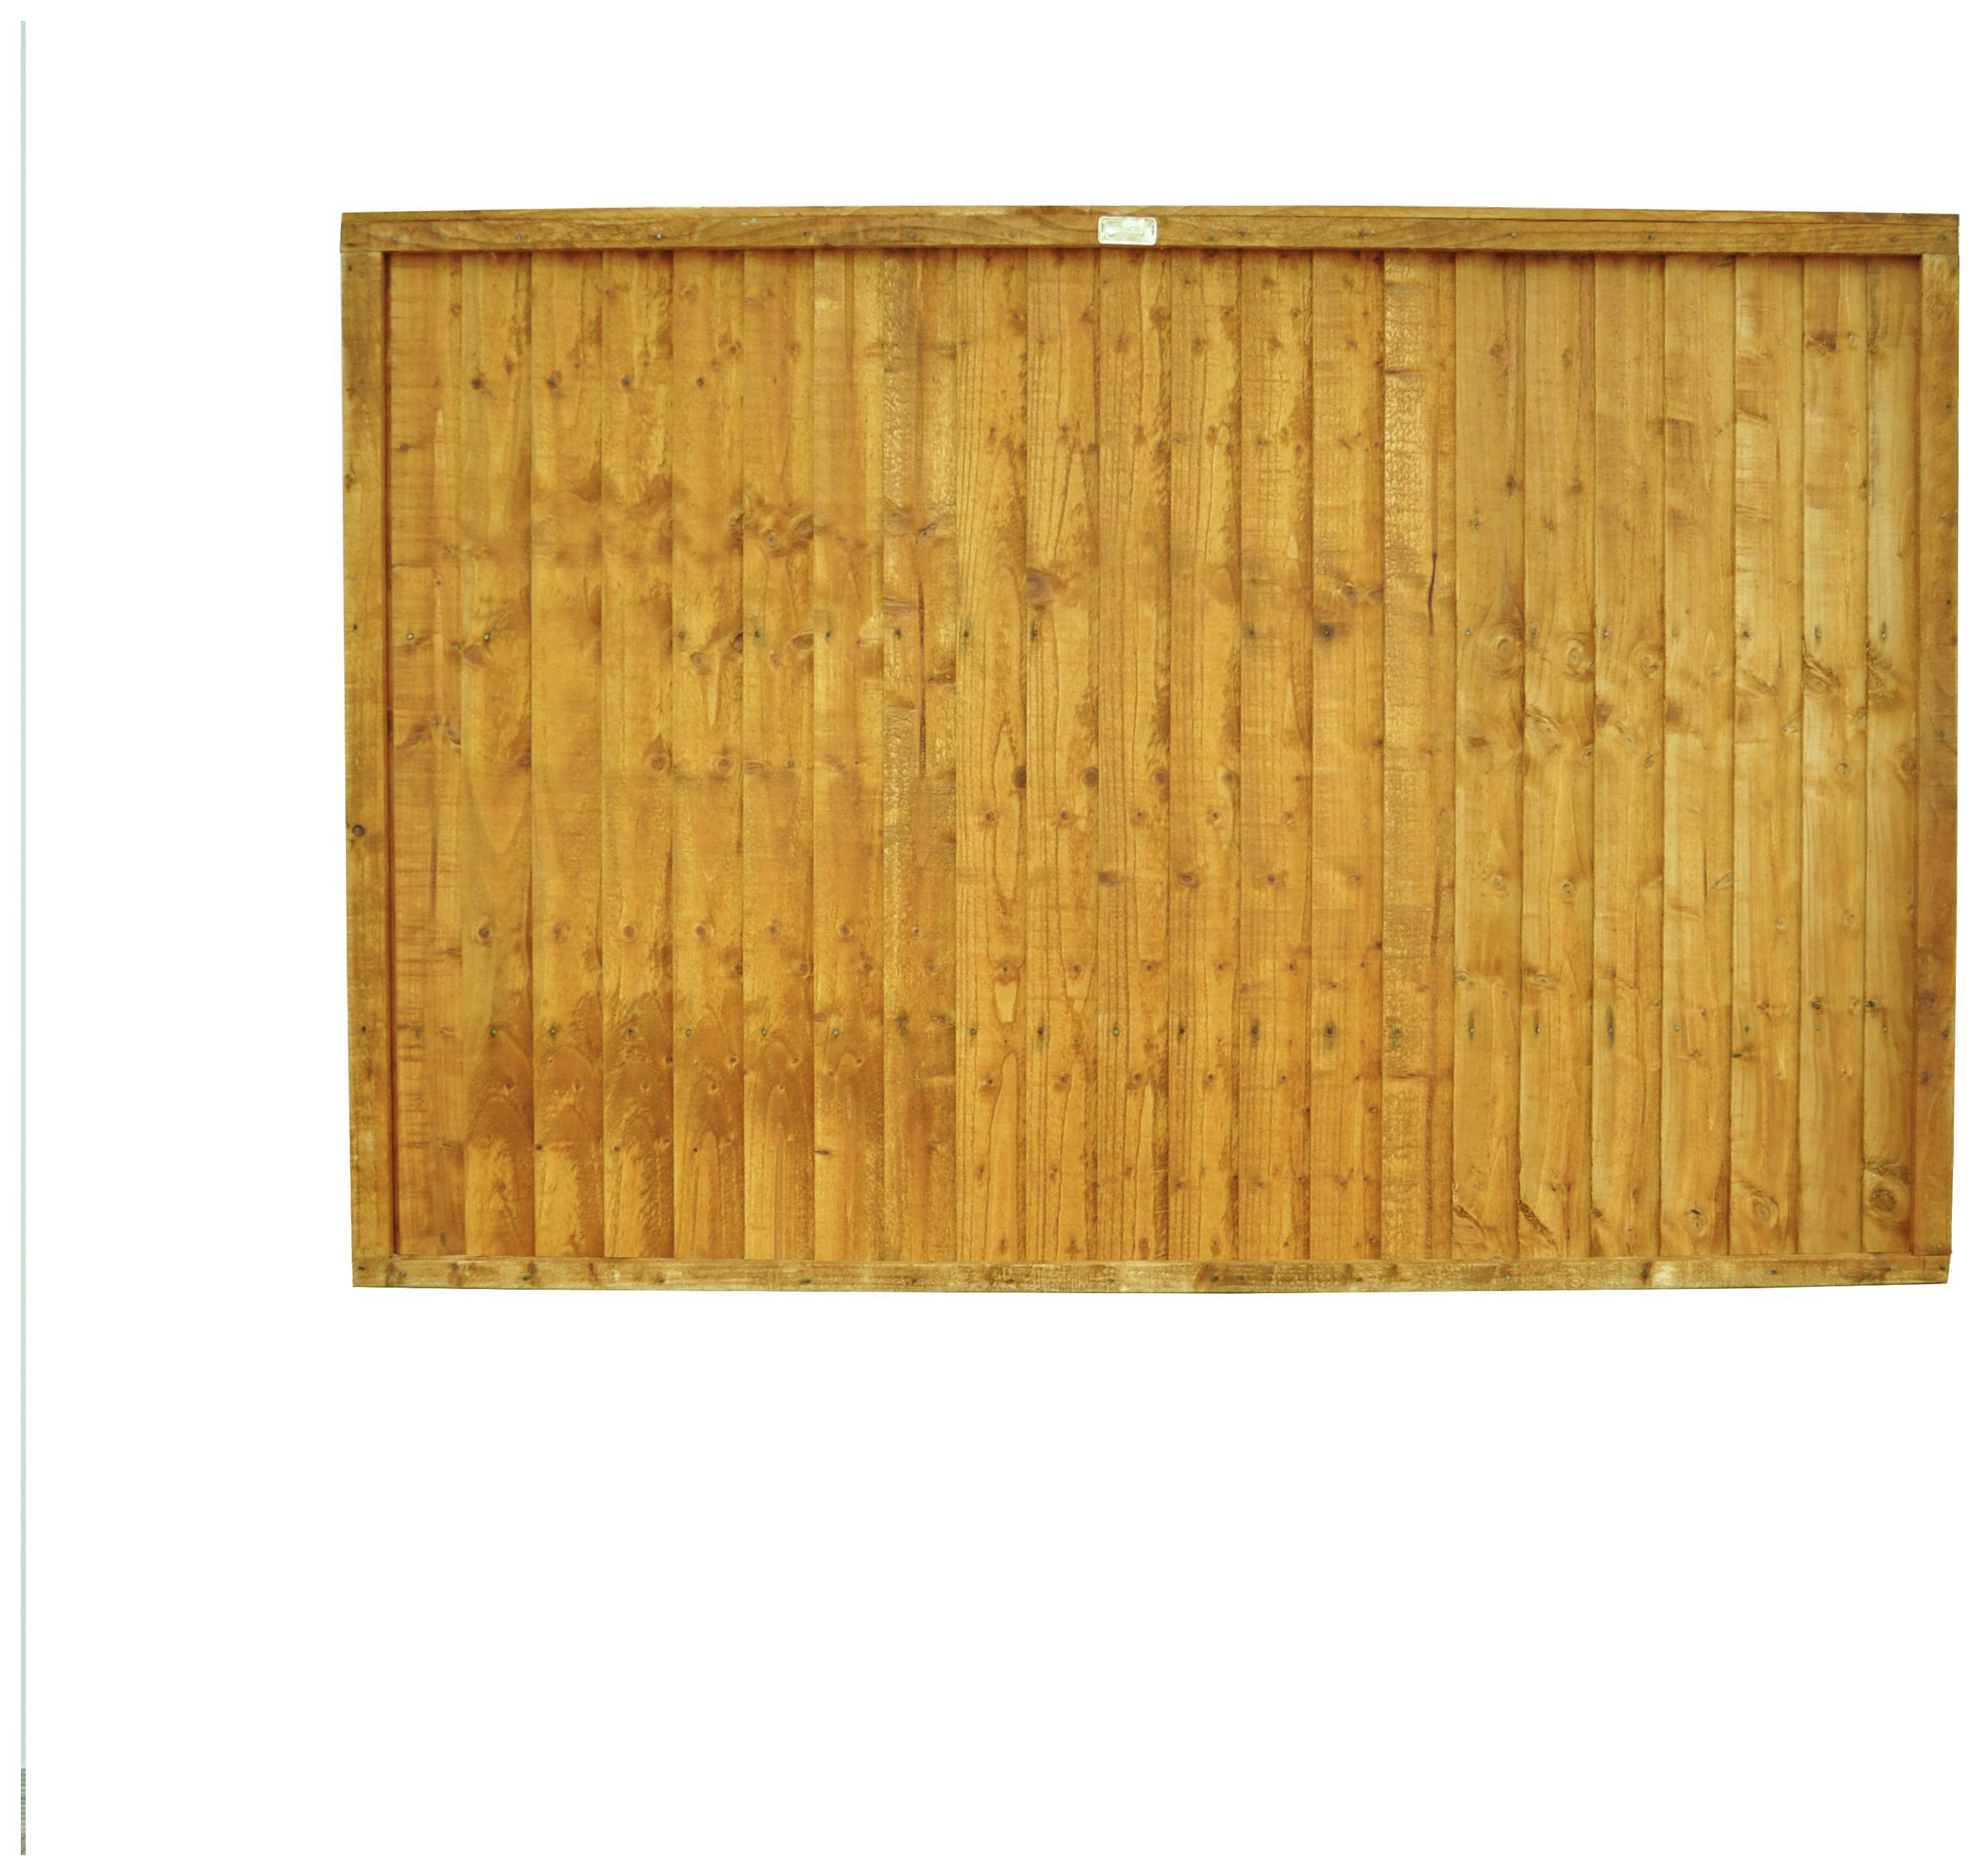 Forest 4ft (1.22m) Closeboard Fence Panel - Pack of 3